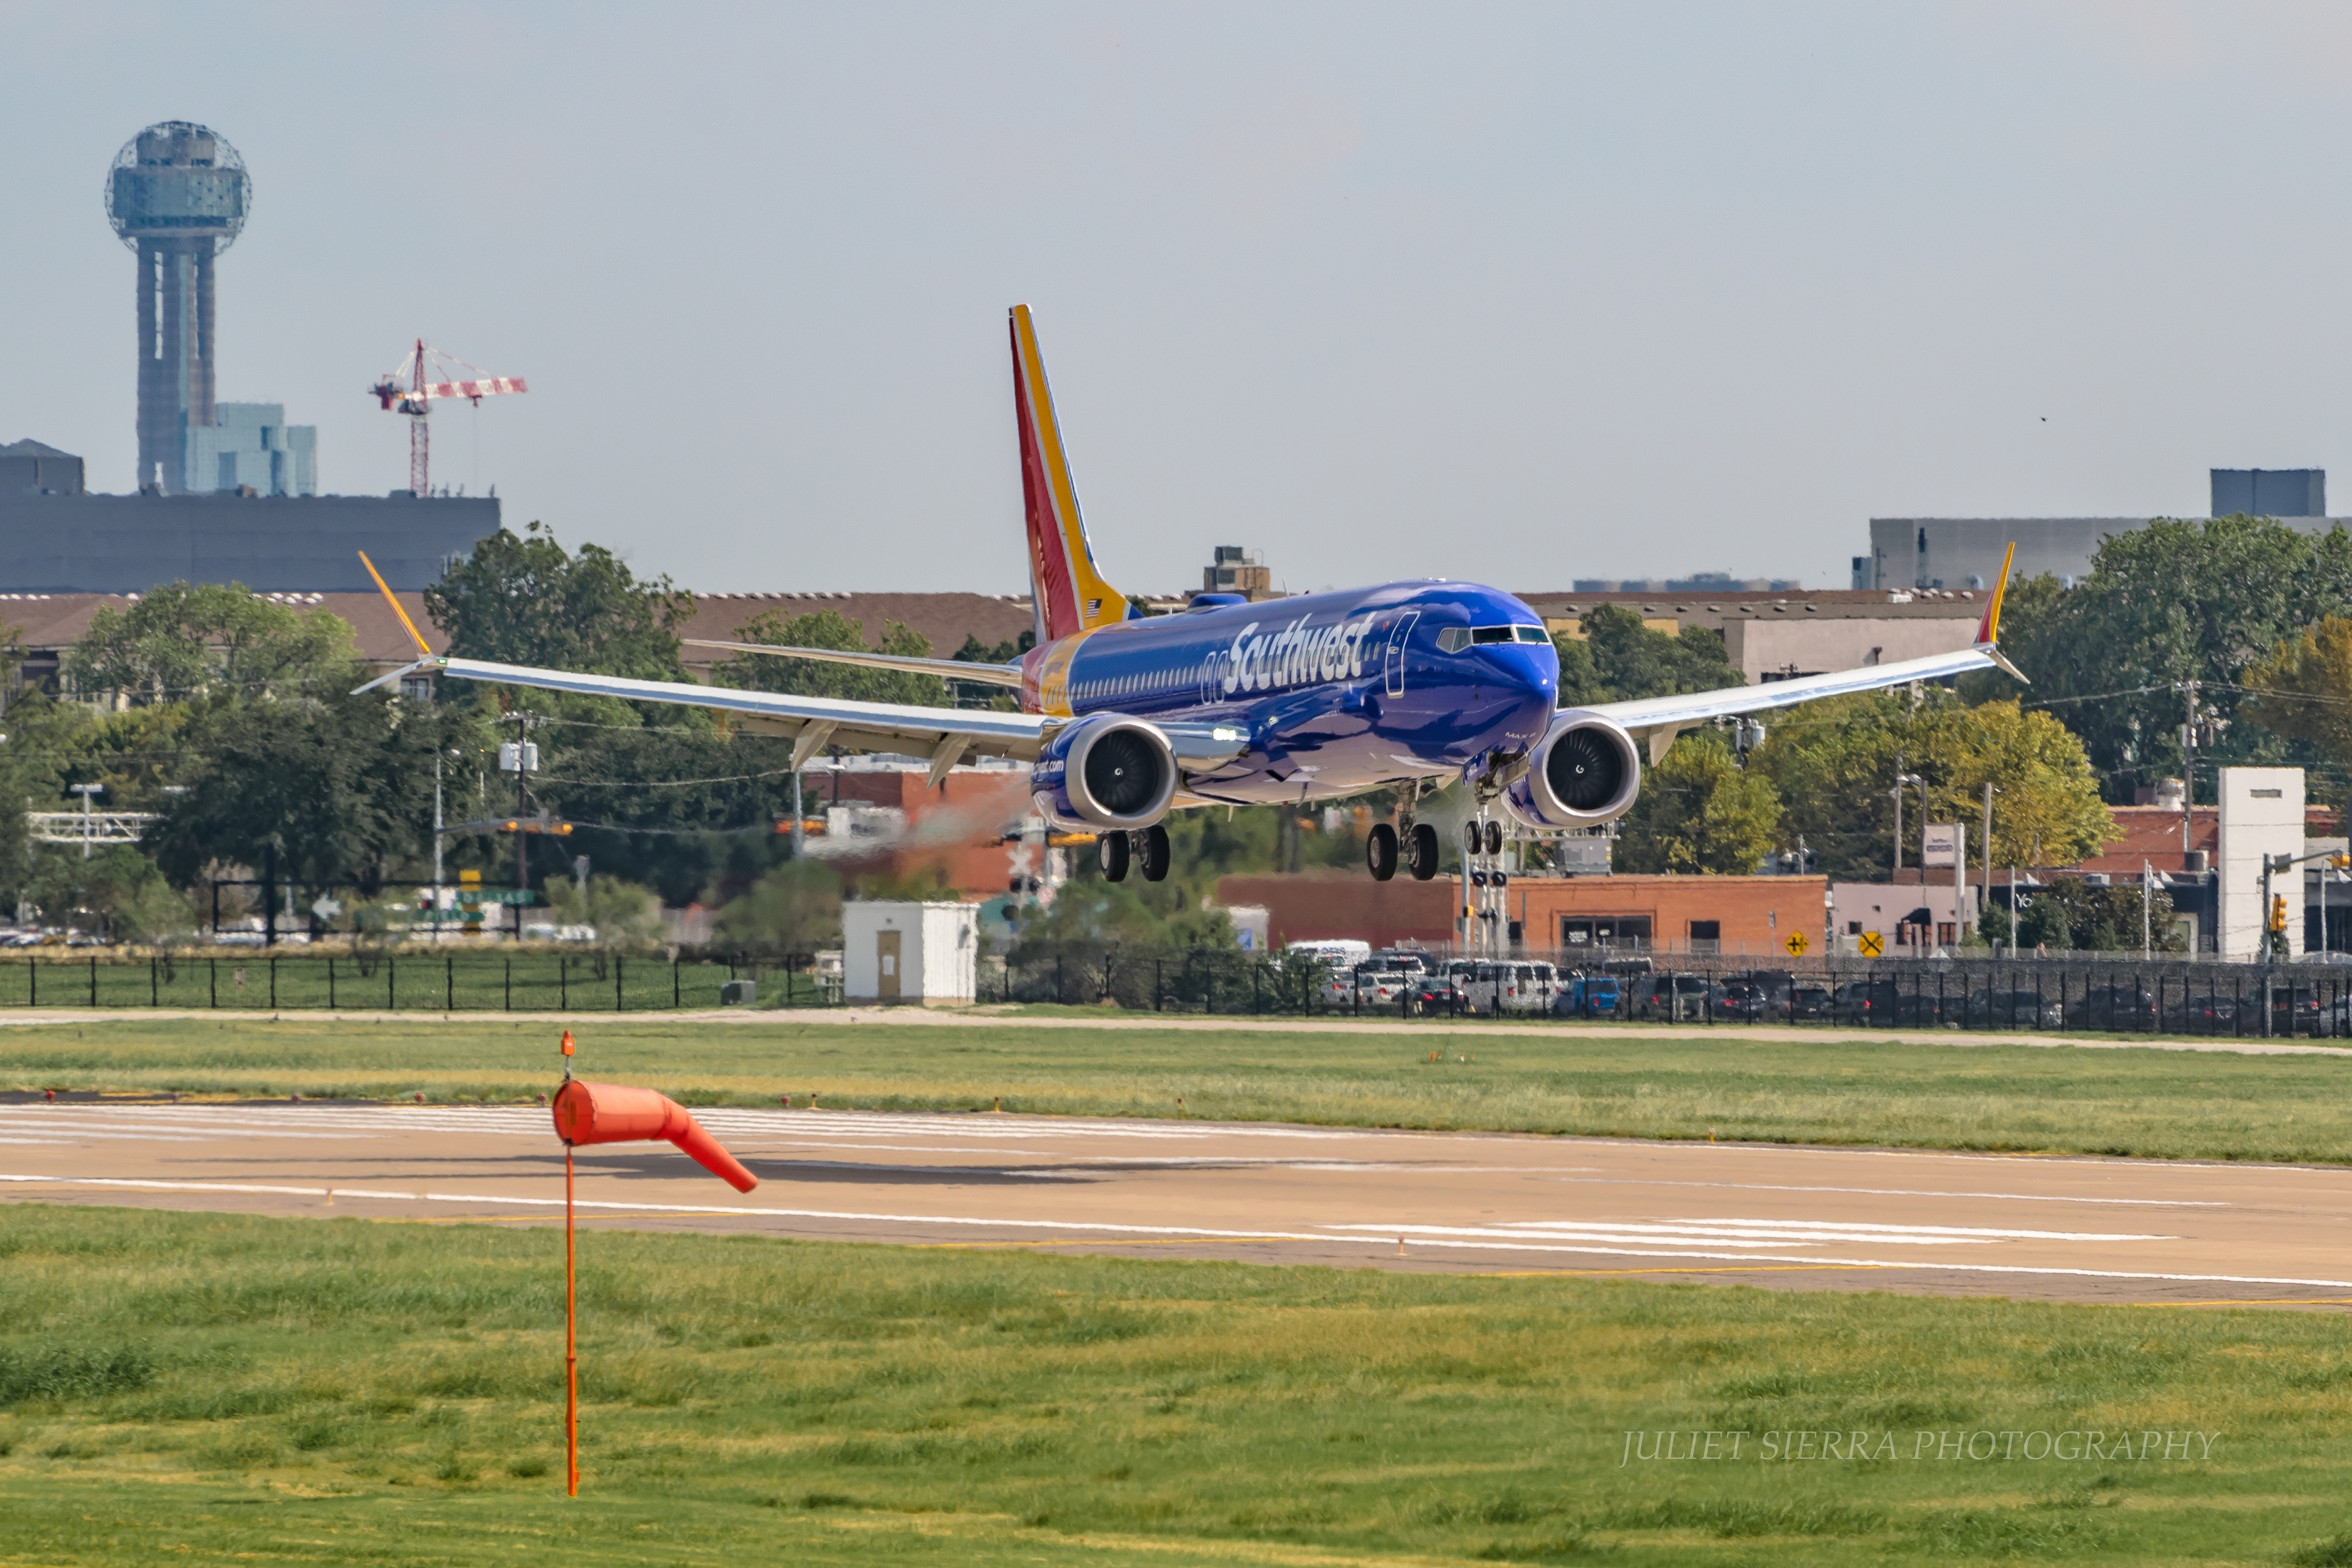 The Latest Southwest Airlines Co. (LUV) Insider Trading Activity